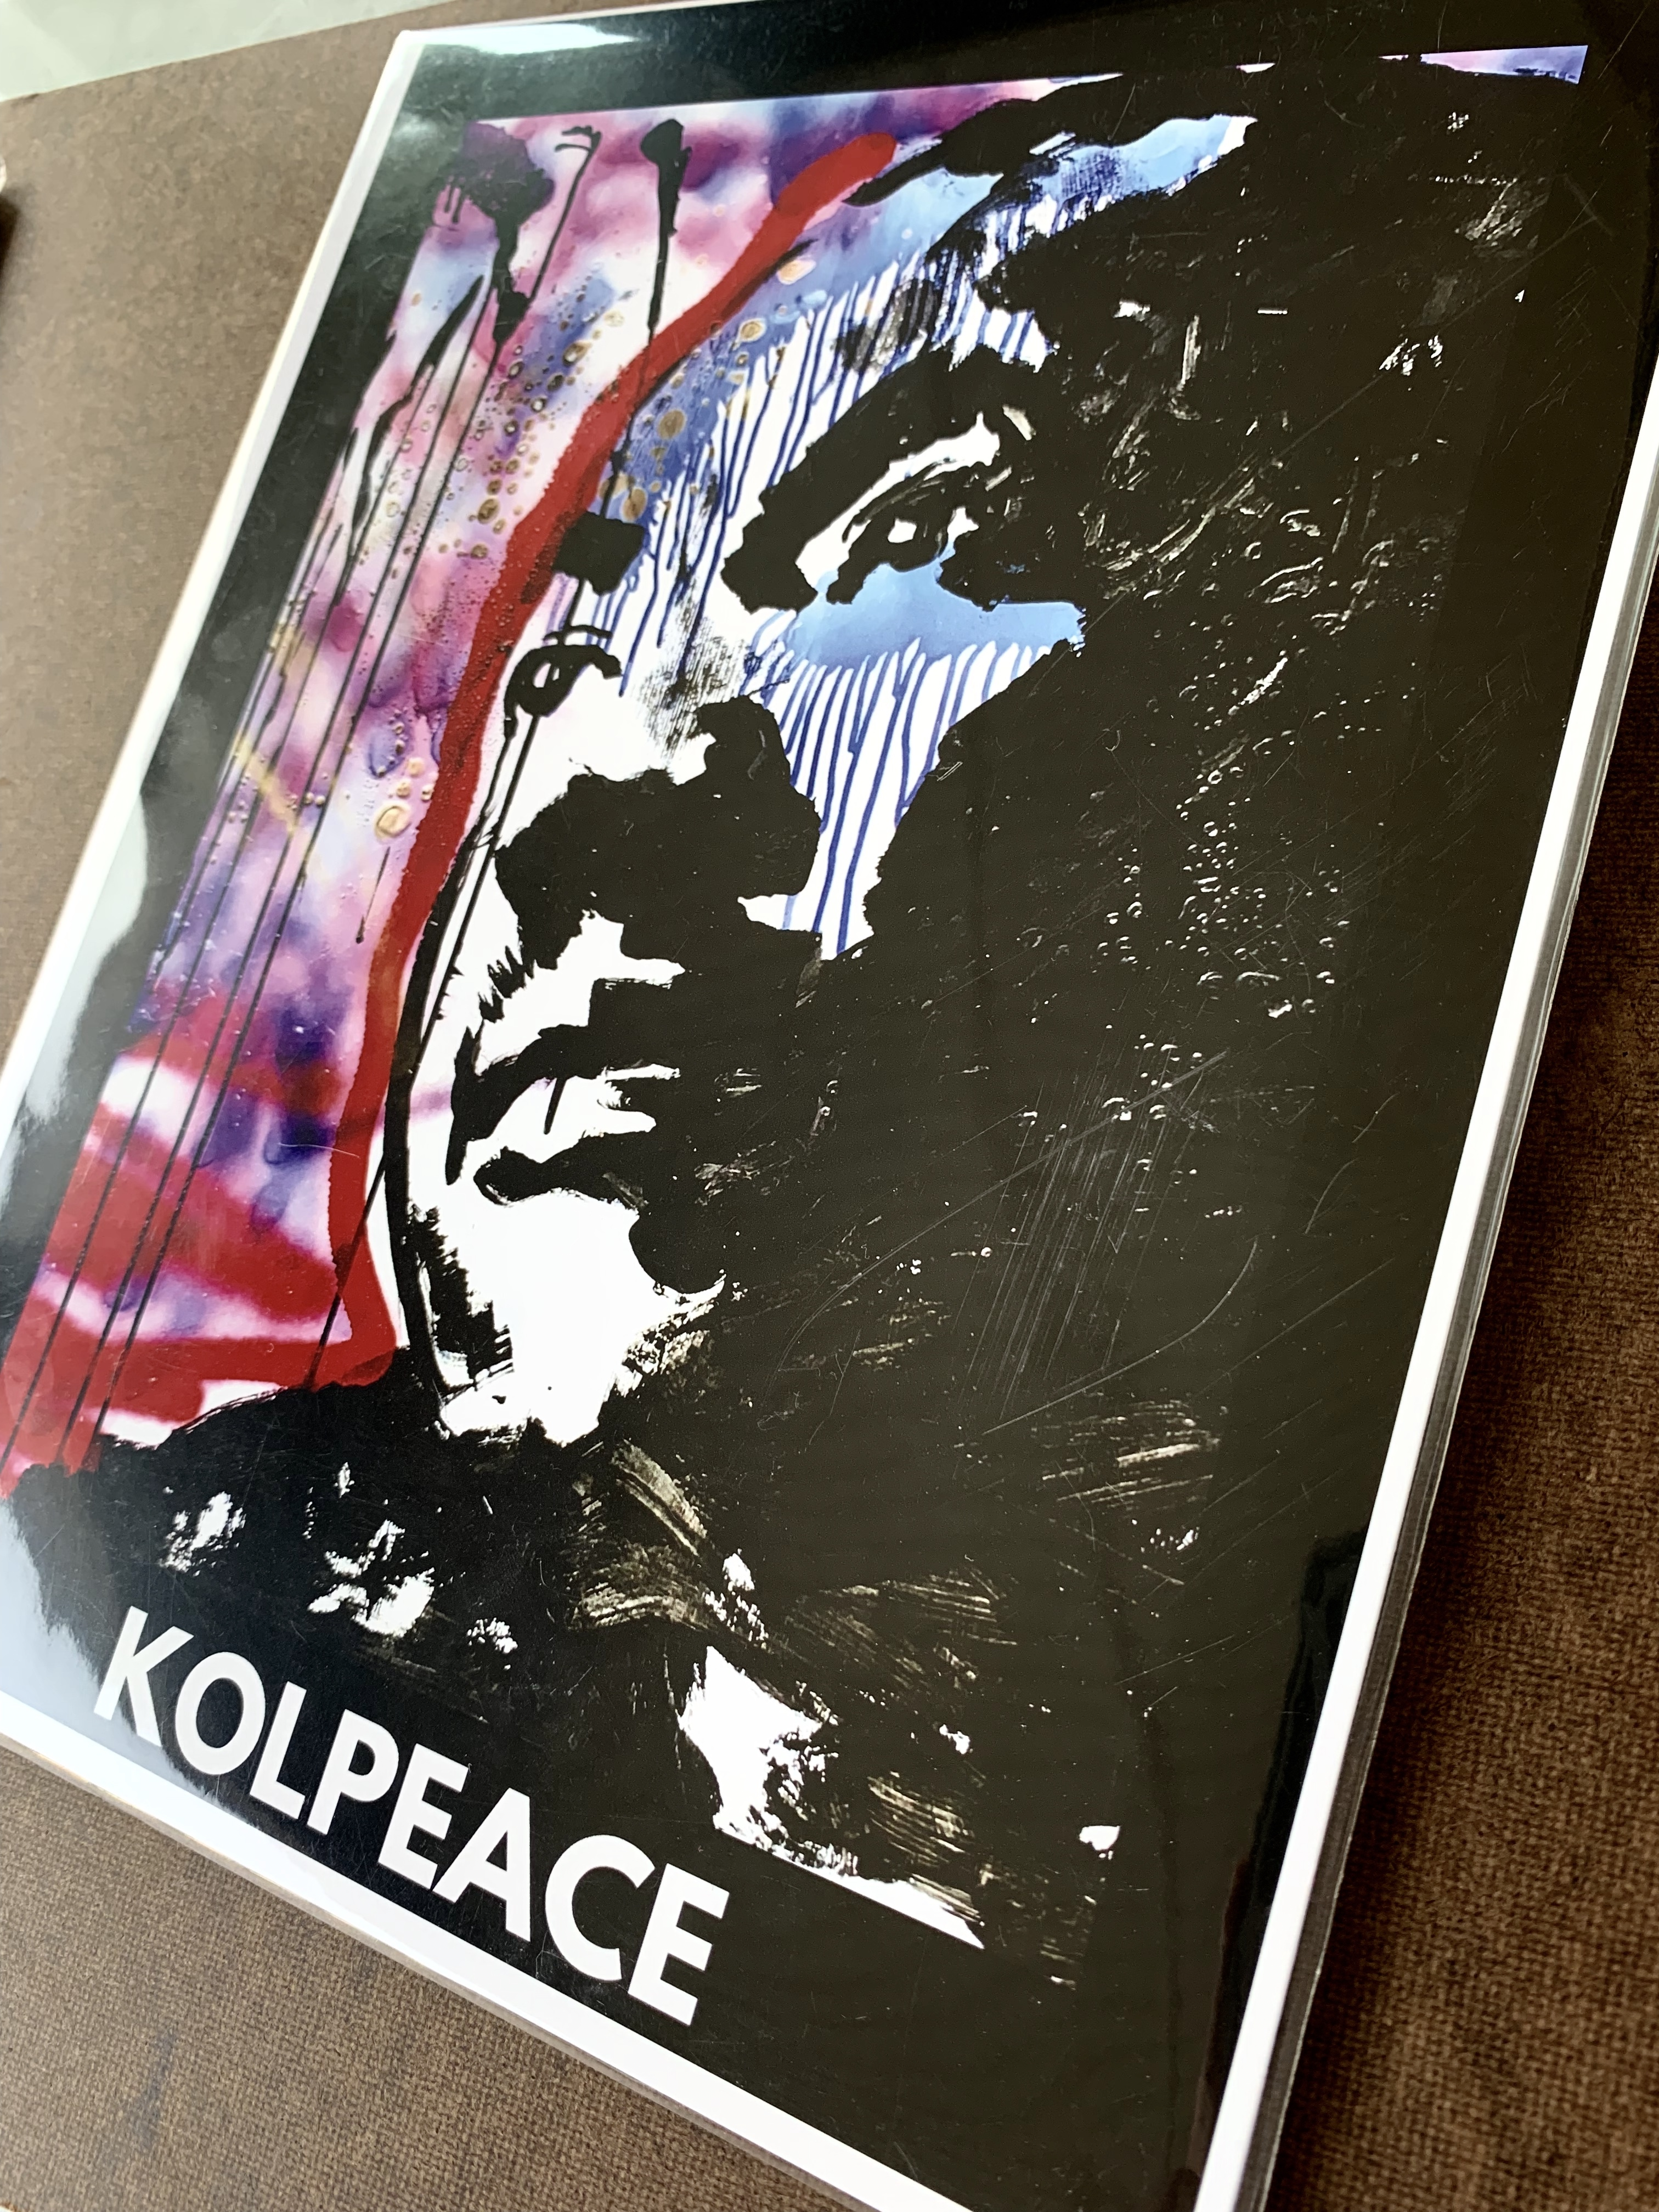 Long Live The King | KOLPEACE PRINT